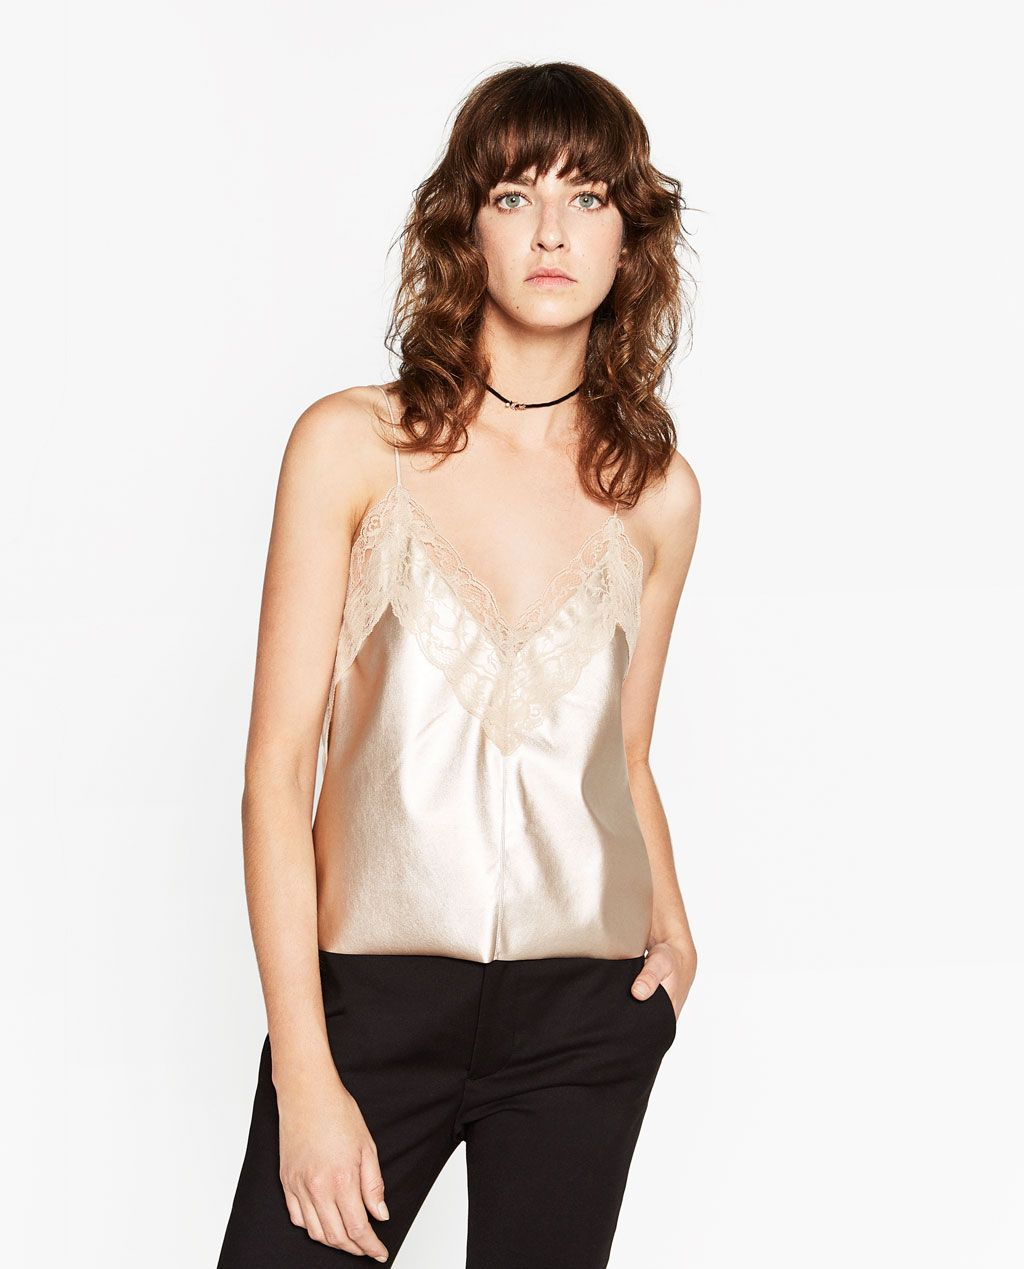 5410ba104b4d6 CAMISOLE TOP-View All-TOPS-WOMAN-SALE